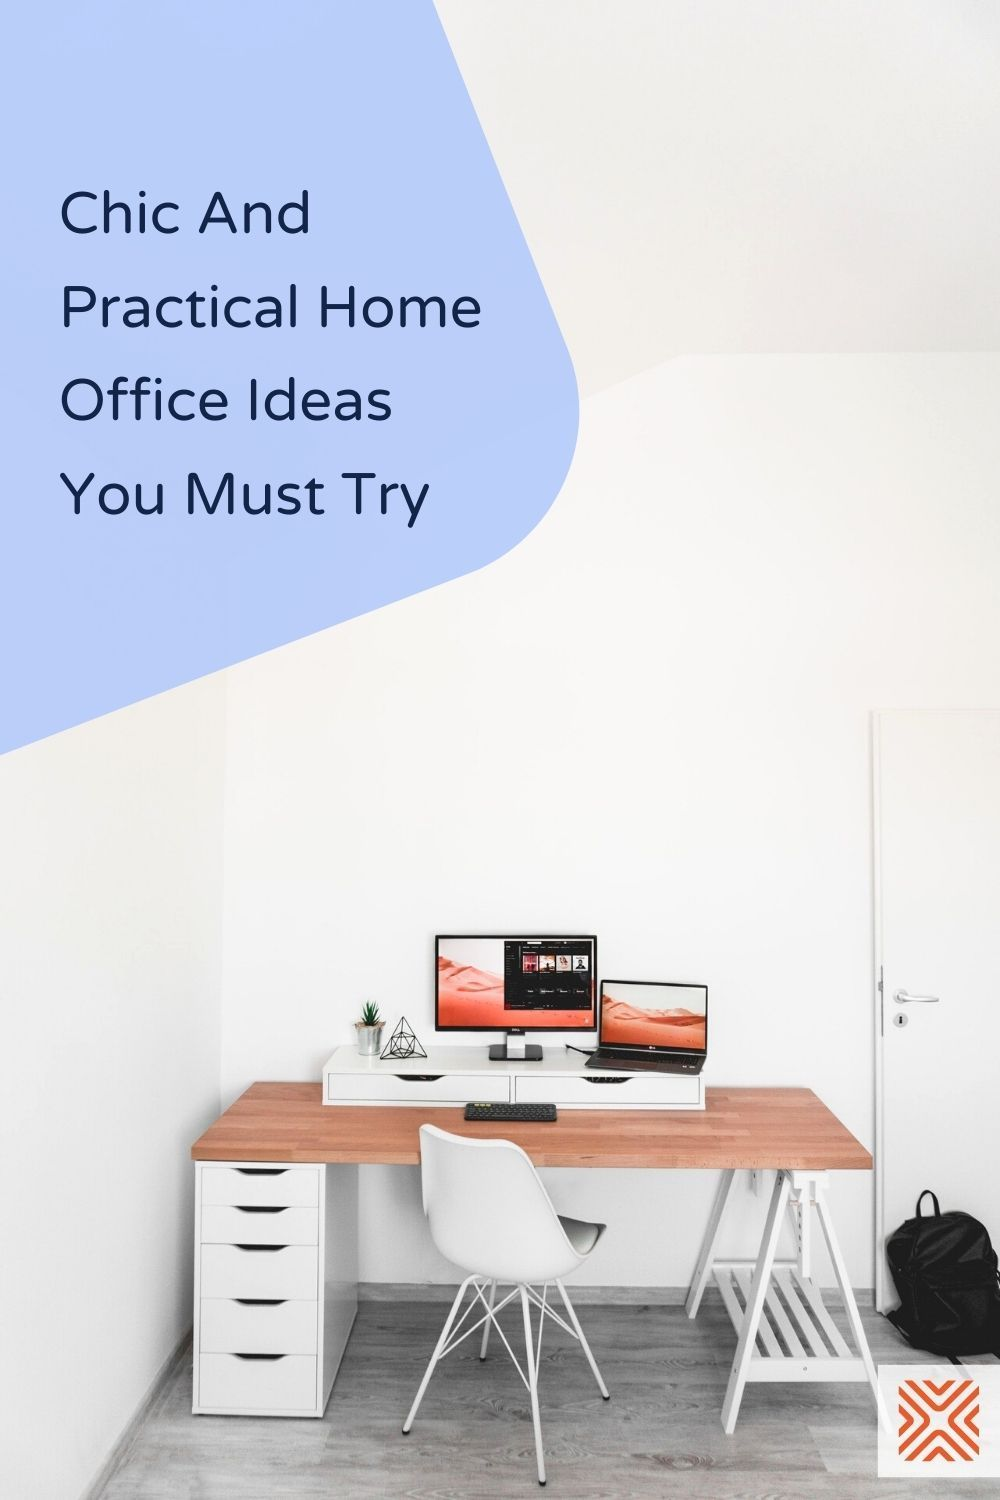 Home environments may not always be the most conducive to work in. The solution? Build yourself a workspace at home with help from these home office design ideas!